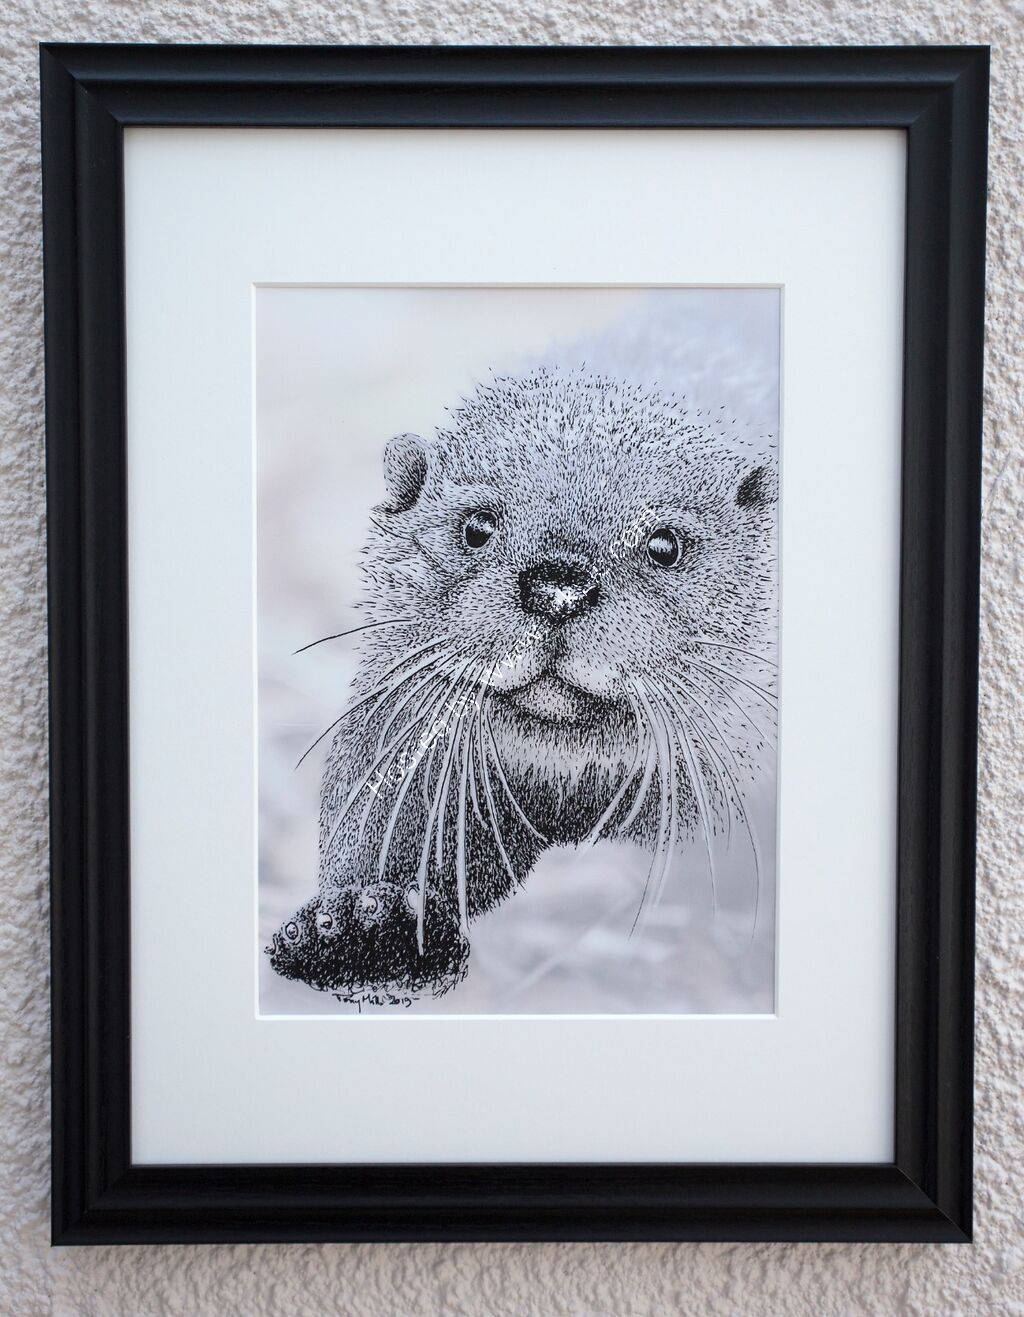 The Inqusitive Otter #4 (framed)